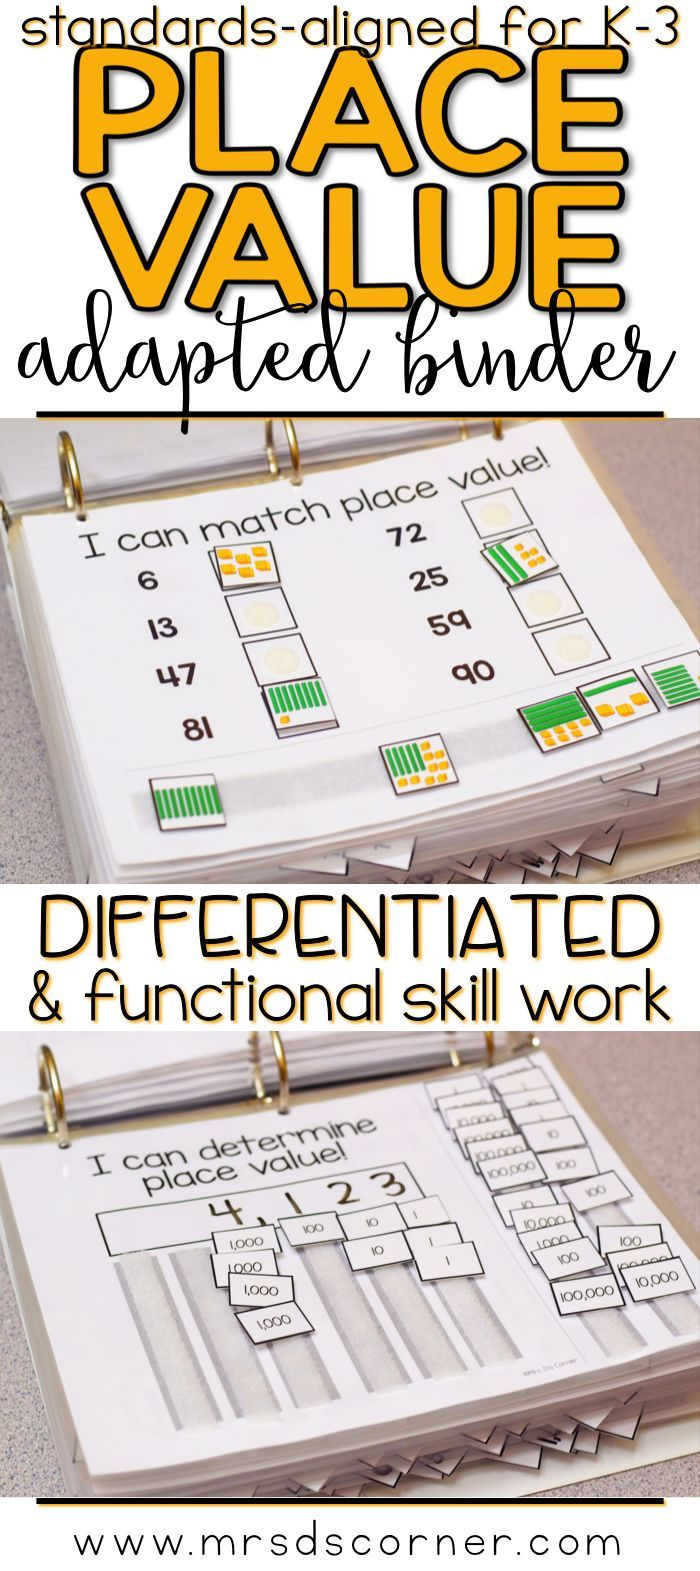 PLACE VALUE * Functional and differentiated skill work that covers place value mathematics standards-aligned topics for grades K-3, this Place Value adapted work binder is the perfect addition to any elementary special education classroom. Includes 1:1 correspondence, Describing objects in sets, Mathematical language, Compare and order numbers, Create sets of numbers, Create models to make numbers, Standard and Expanded form, Using a number line. Adapted Work Binders only at Mrs. D's Corn